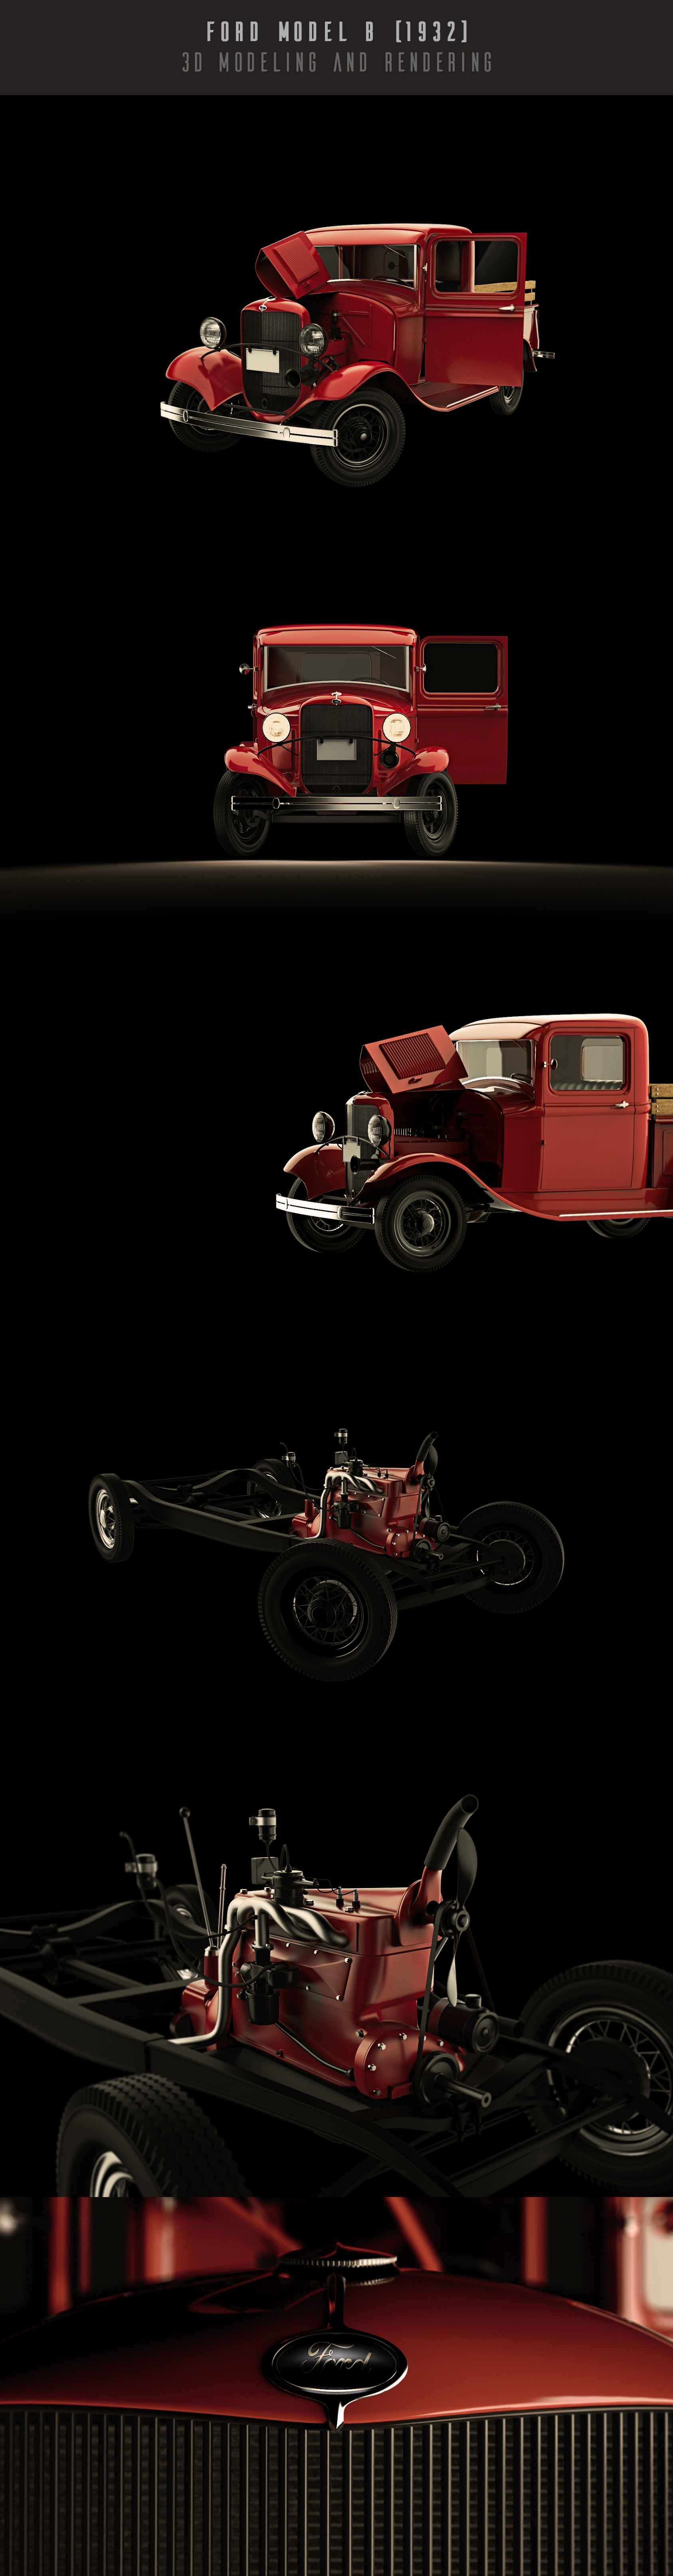 """Check out my @Behance project: """"1932 Ford Model B - 3D Modeling and ..."""